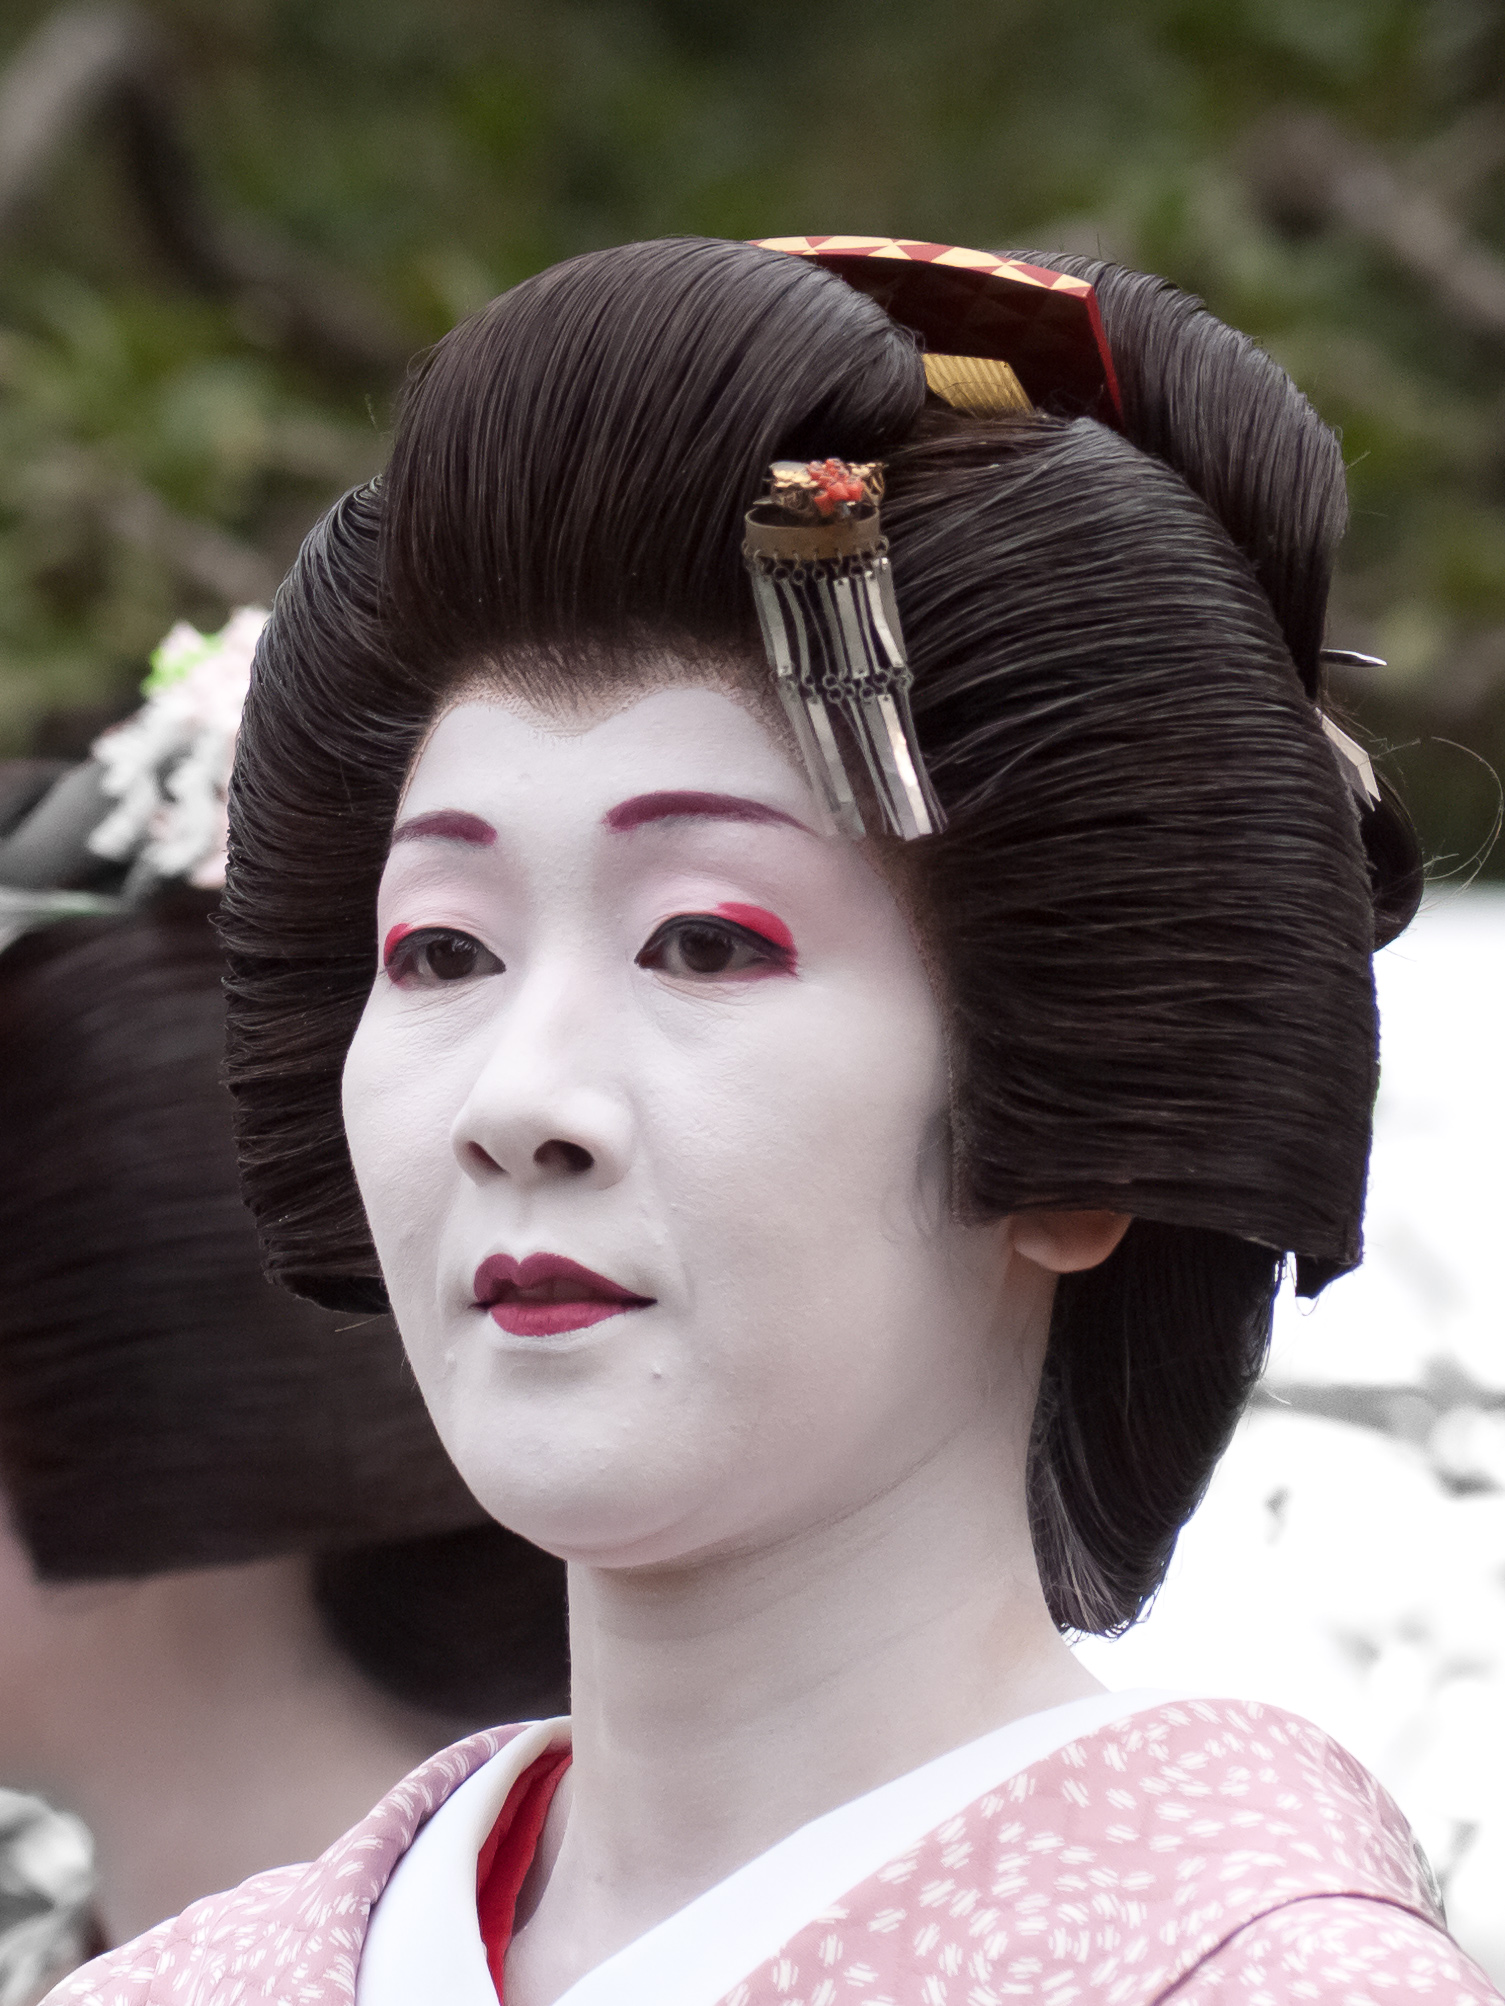 FileJapan Kabuki Actress Makeup 1202.jpg - Wikimedia Commons